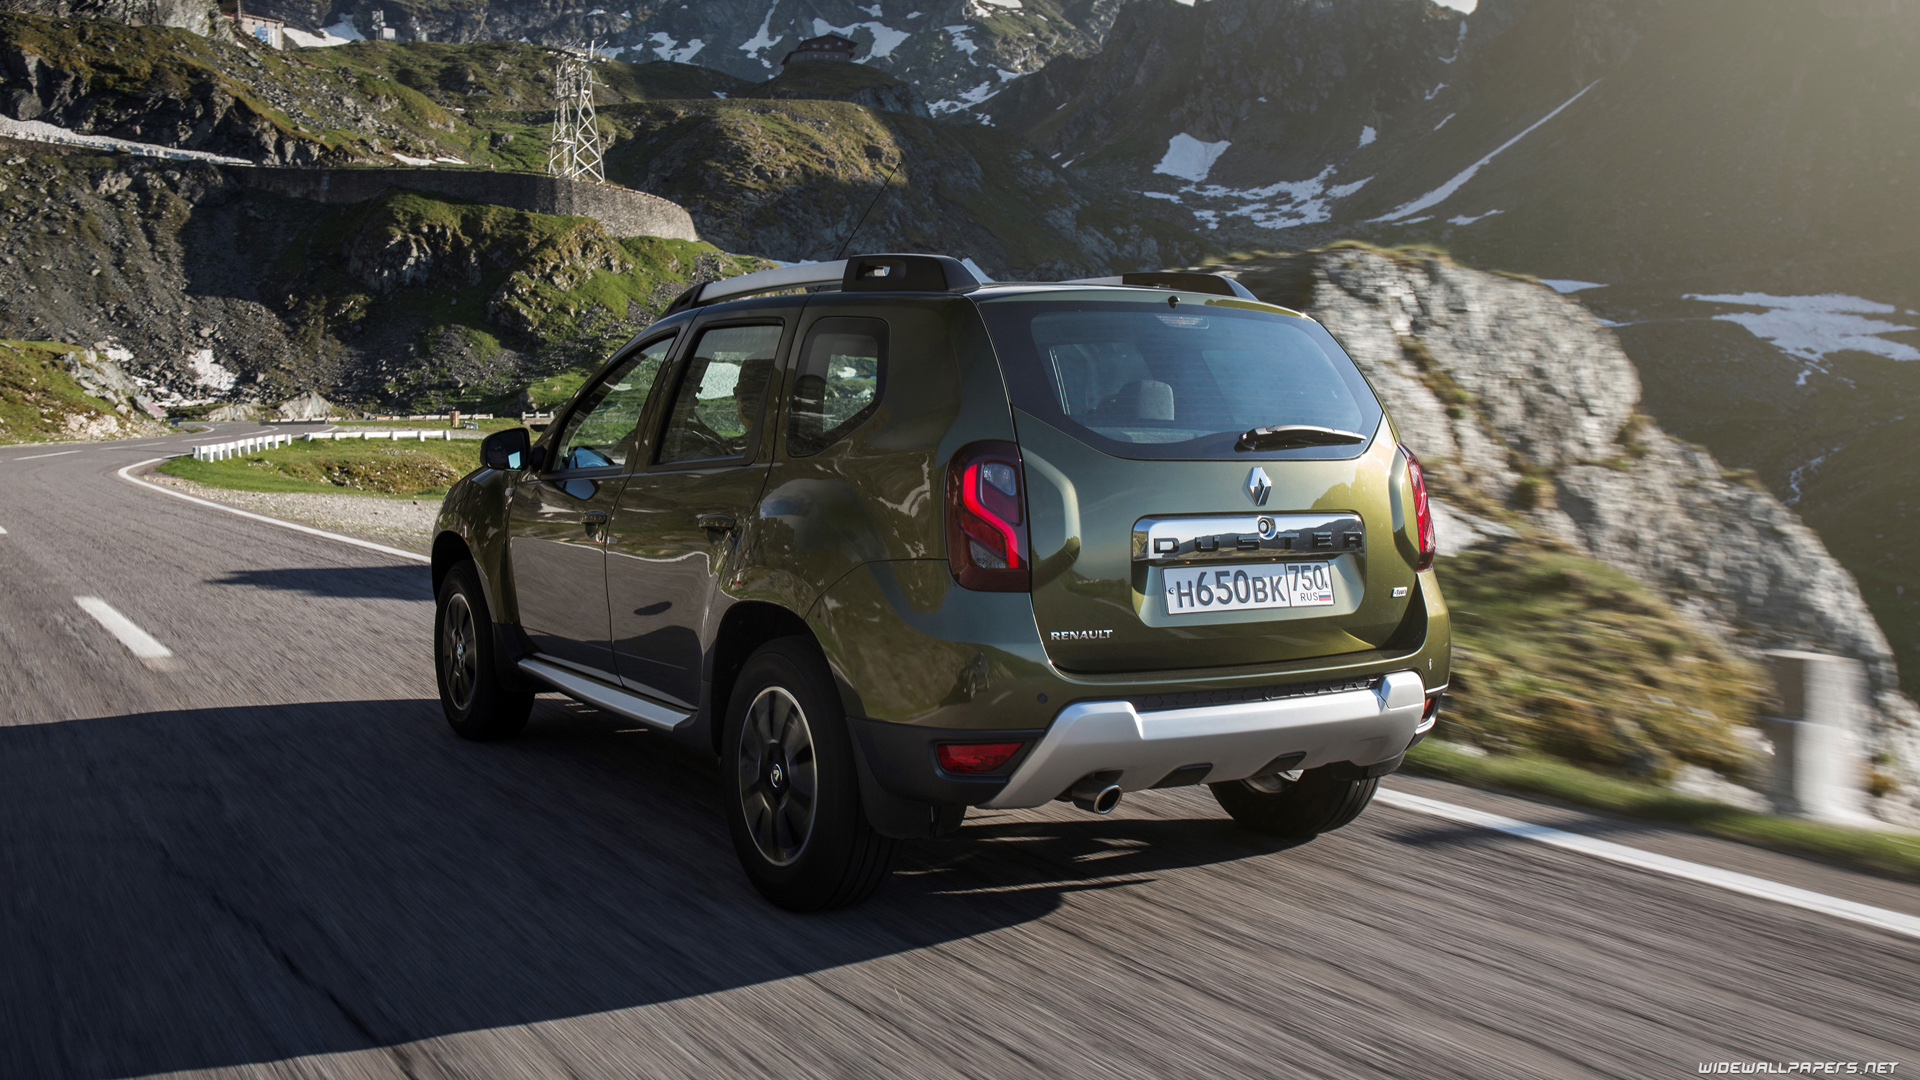 Renault duster cars desktop wallpapers hd and wide wallpapers renault duster ru spec car wallpapers voltagebd Images